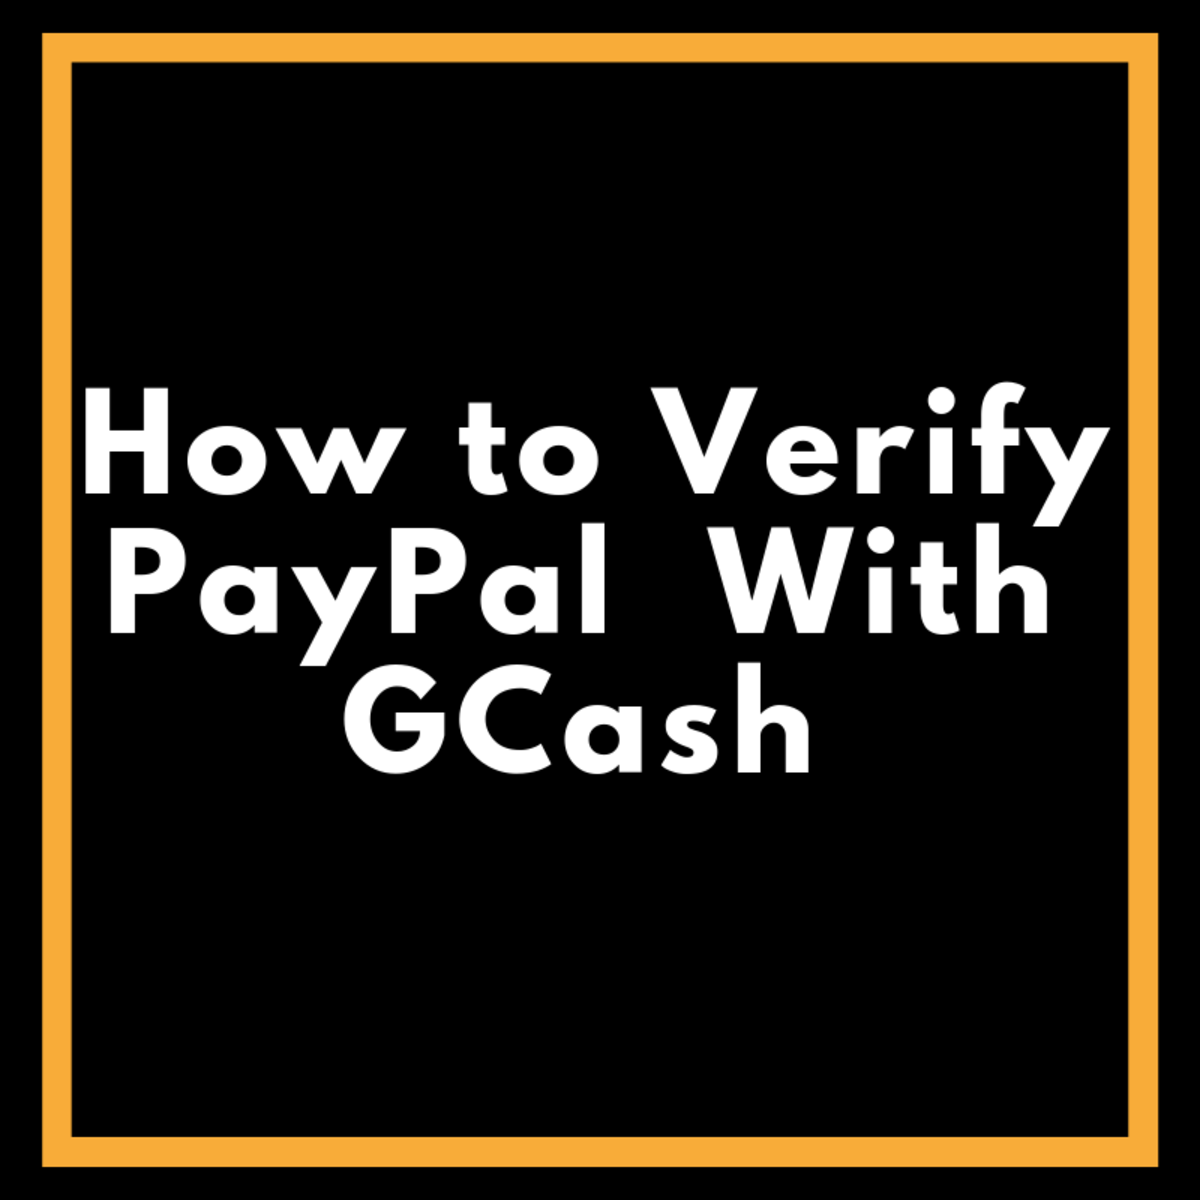 How to Verify Your PayPal Account Using a GCash Mastercard